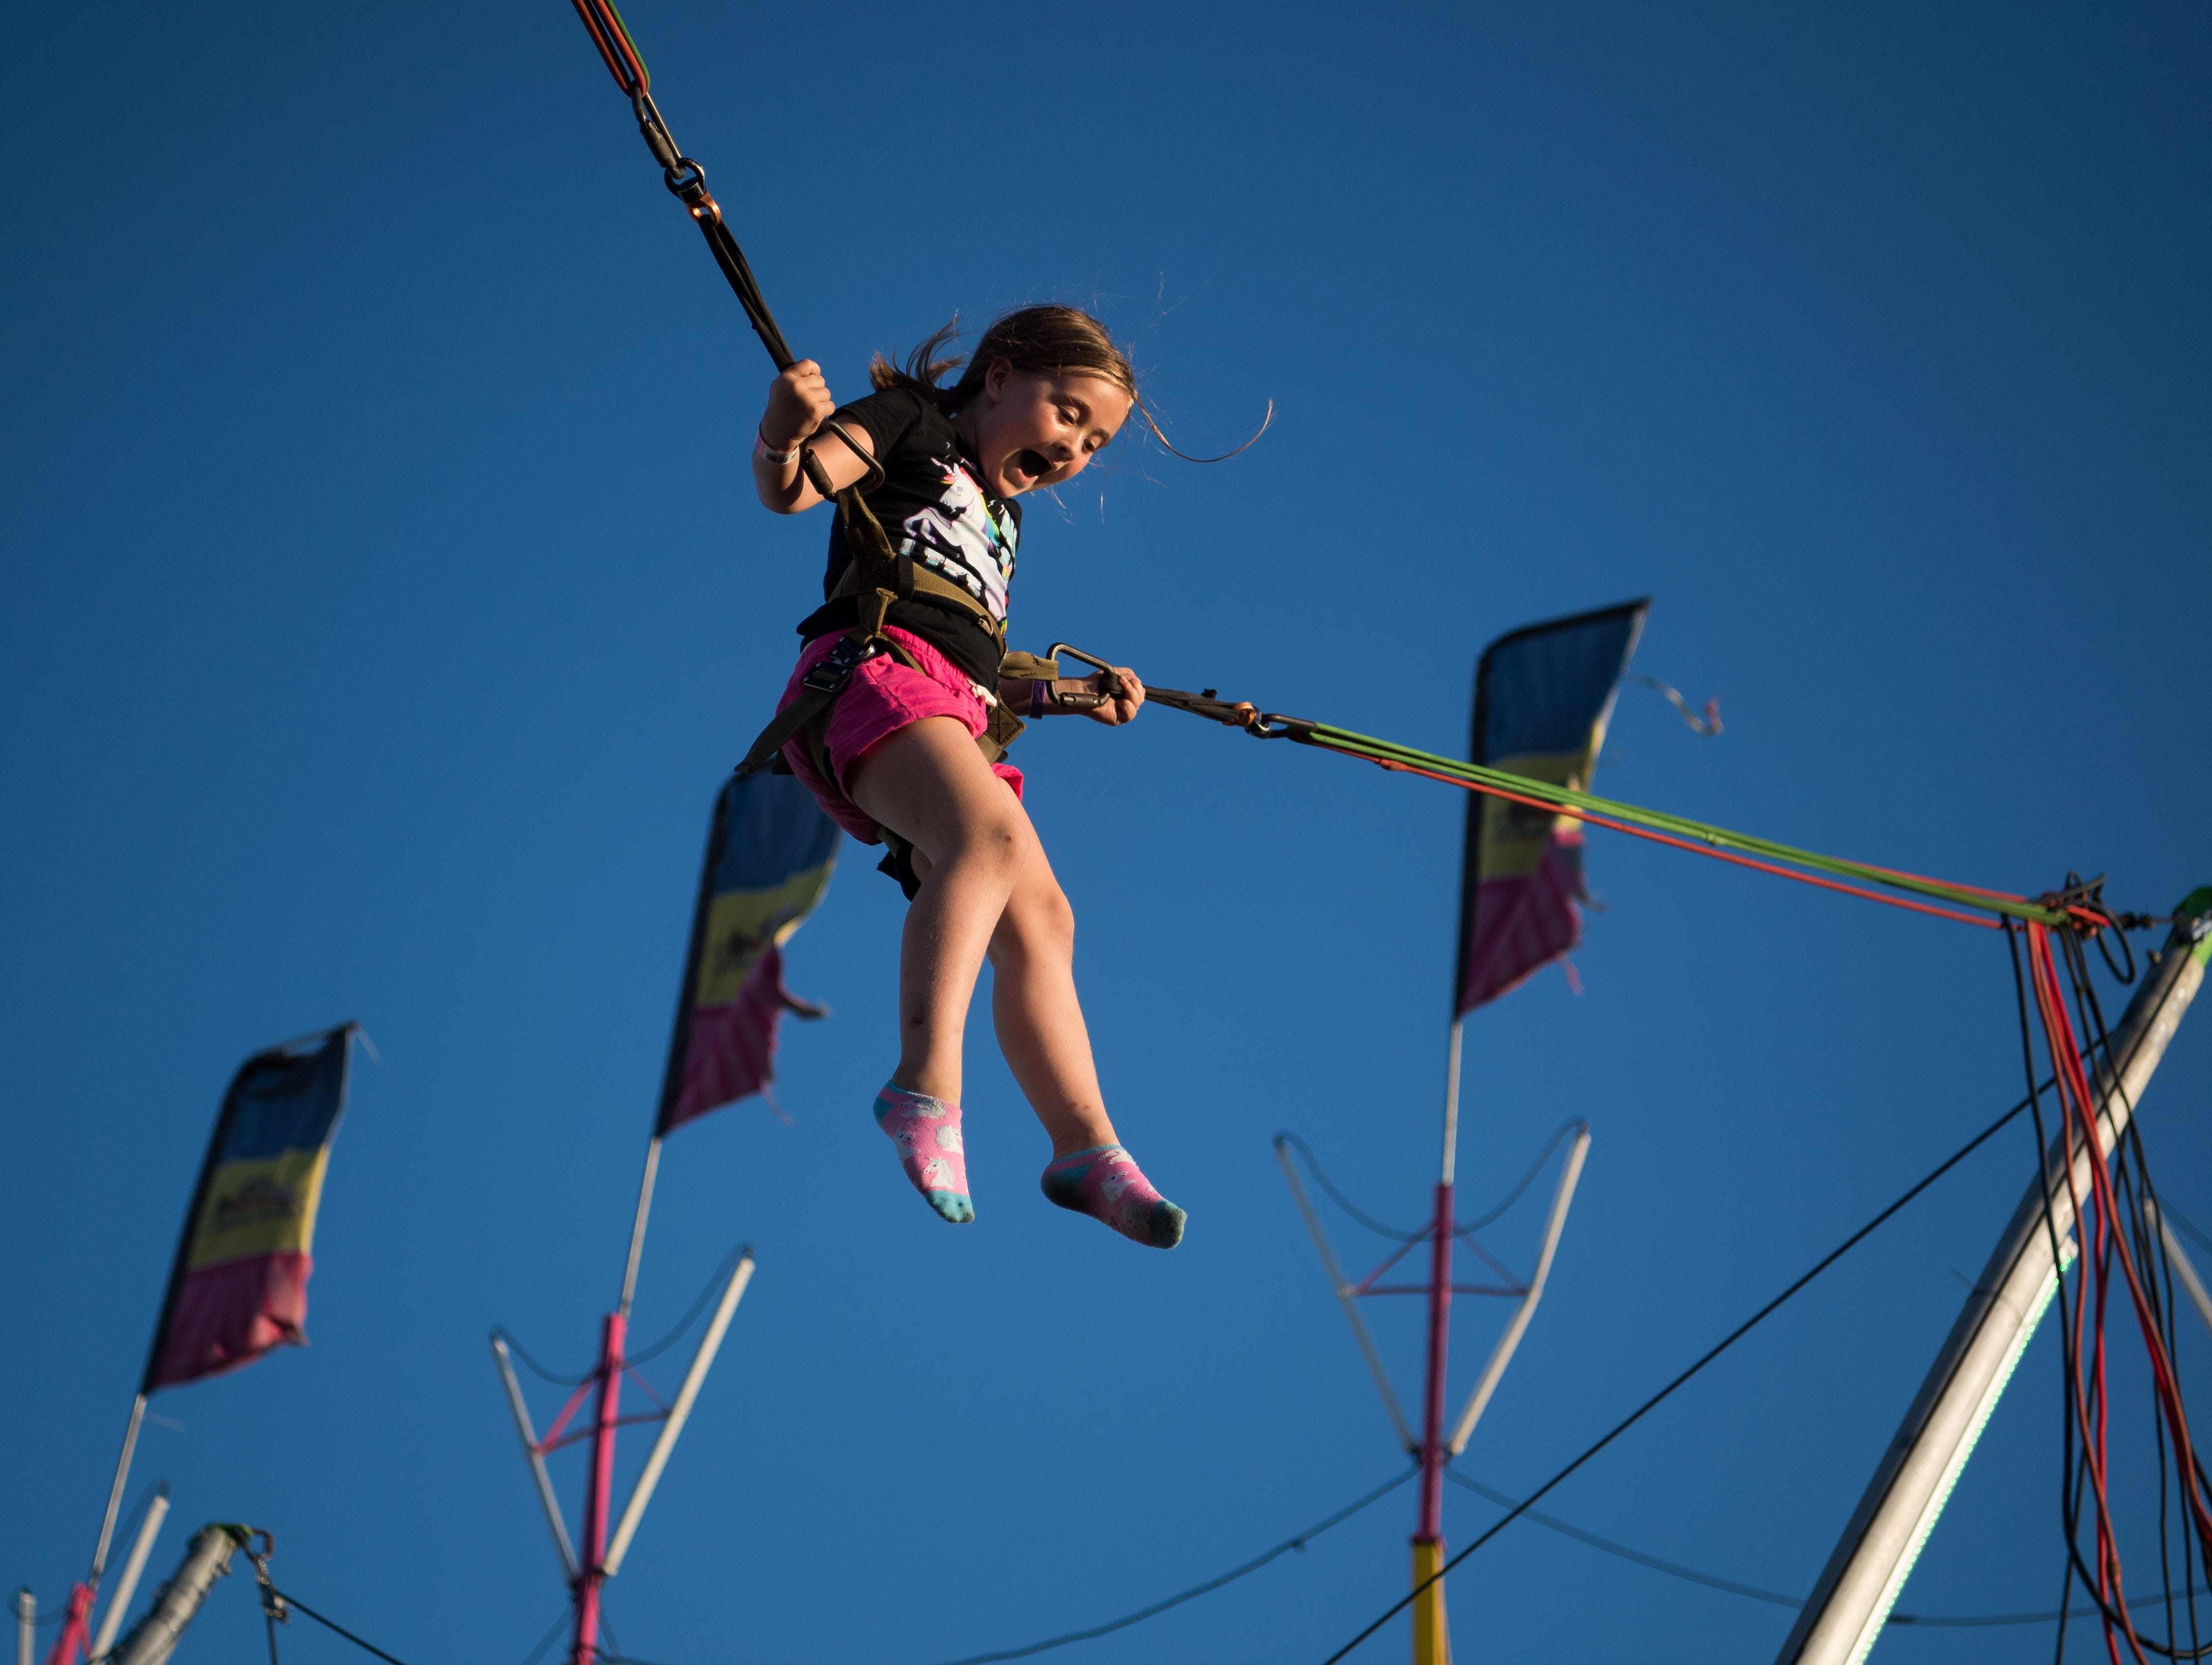 """Ashlynn Mickler, 6, of Live Oak, enjoys the Euro Bungee activity at the 54th annual St. Lucie County Fair on opening night Friday, Feb. 22, 2019, at the St. Lucie County Fairgrounds in Fort Pierce. """"She did it at the Live Oak fair last year, and fell in love with it,"""" said Ashlynn's grandmother, Jo Ross, of St. Lucie County. """"She wants to be able to jump out of airplanes like I used to when I was younger,"""" Ross added. For more information on the fair, which runs through March 3, go to www.stluciecountyfair.org."""